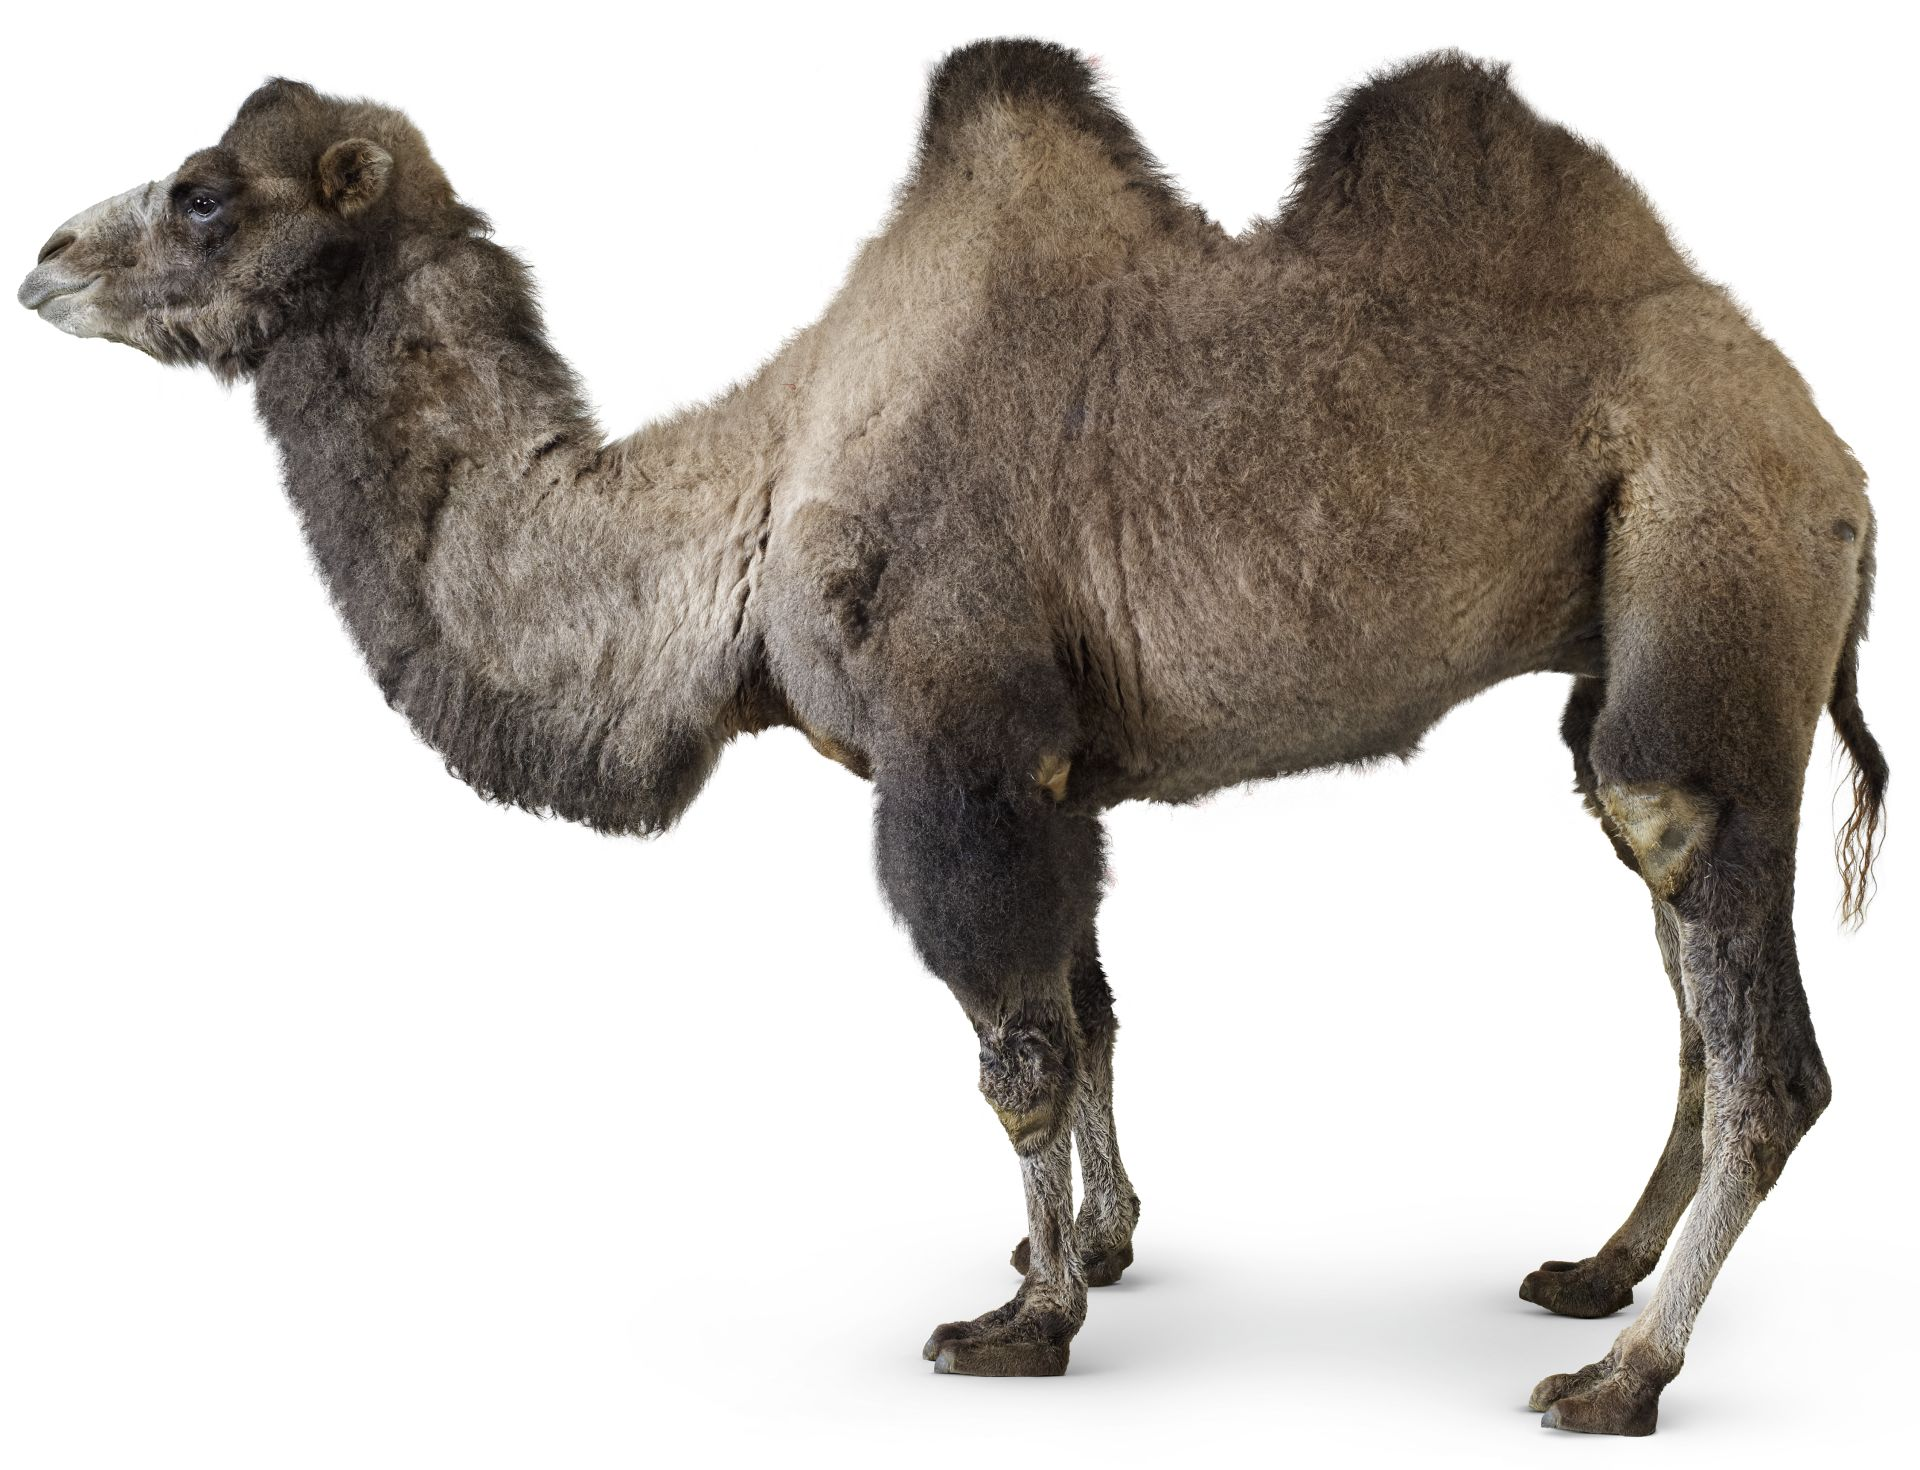 Humps The Bactrian Camel Has Two